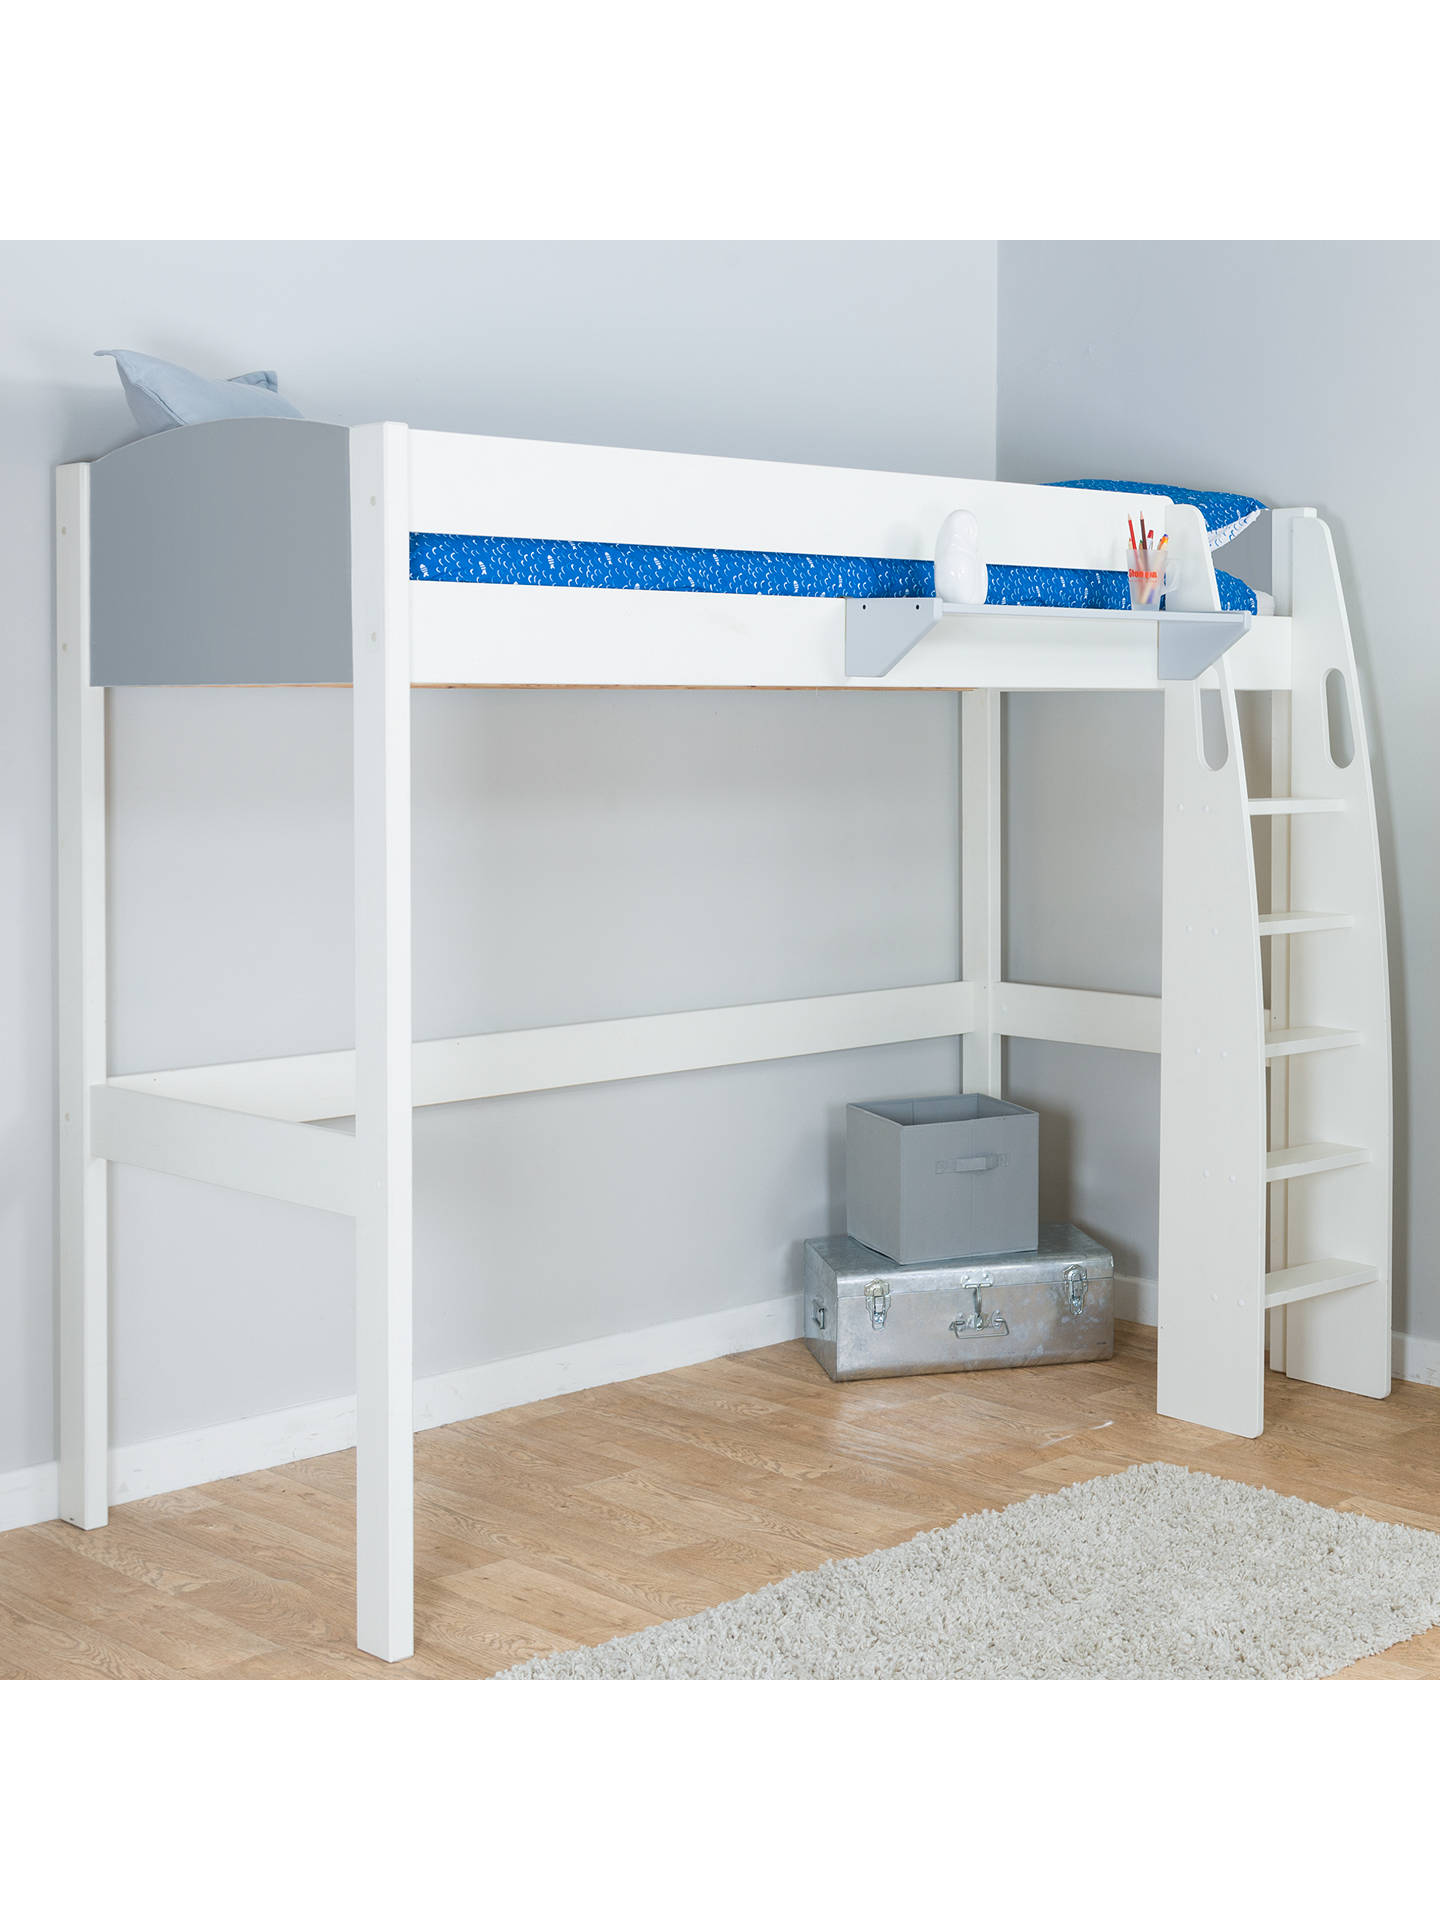 BuyStompa Uno S Plus High-Sleeper Bed Frame, Grey Online at johnlewis.com